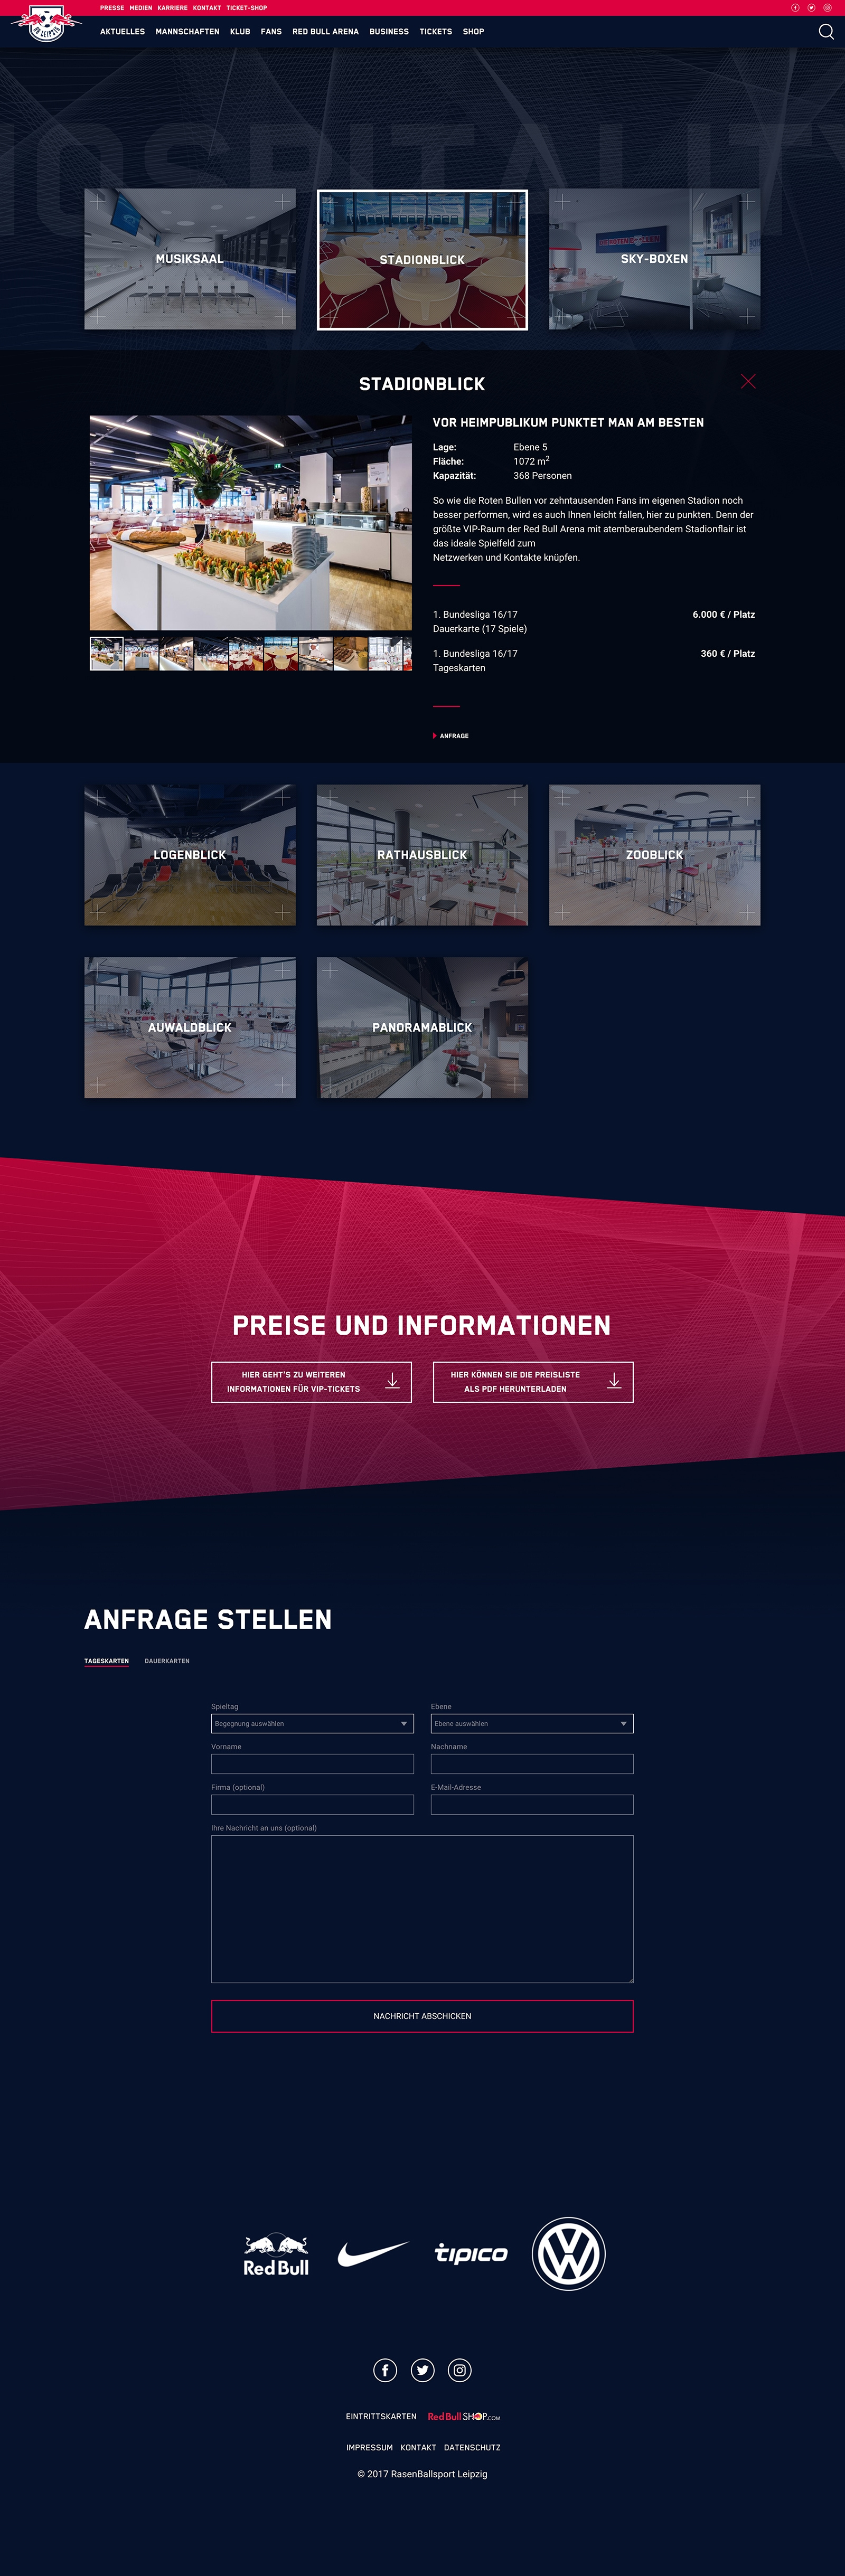 Rb Leipzig Website Relaunch 2017 Image 26